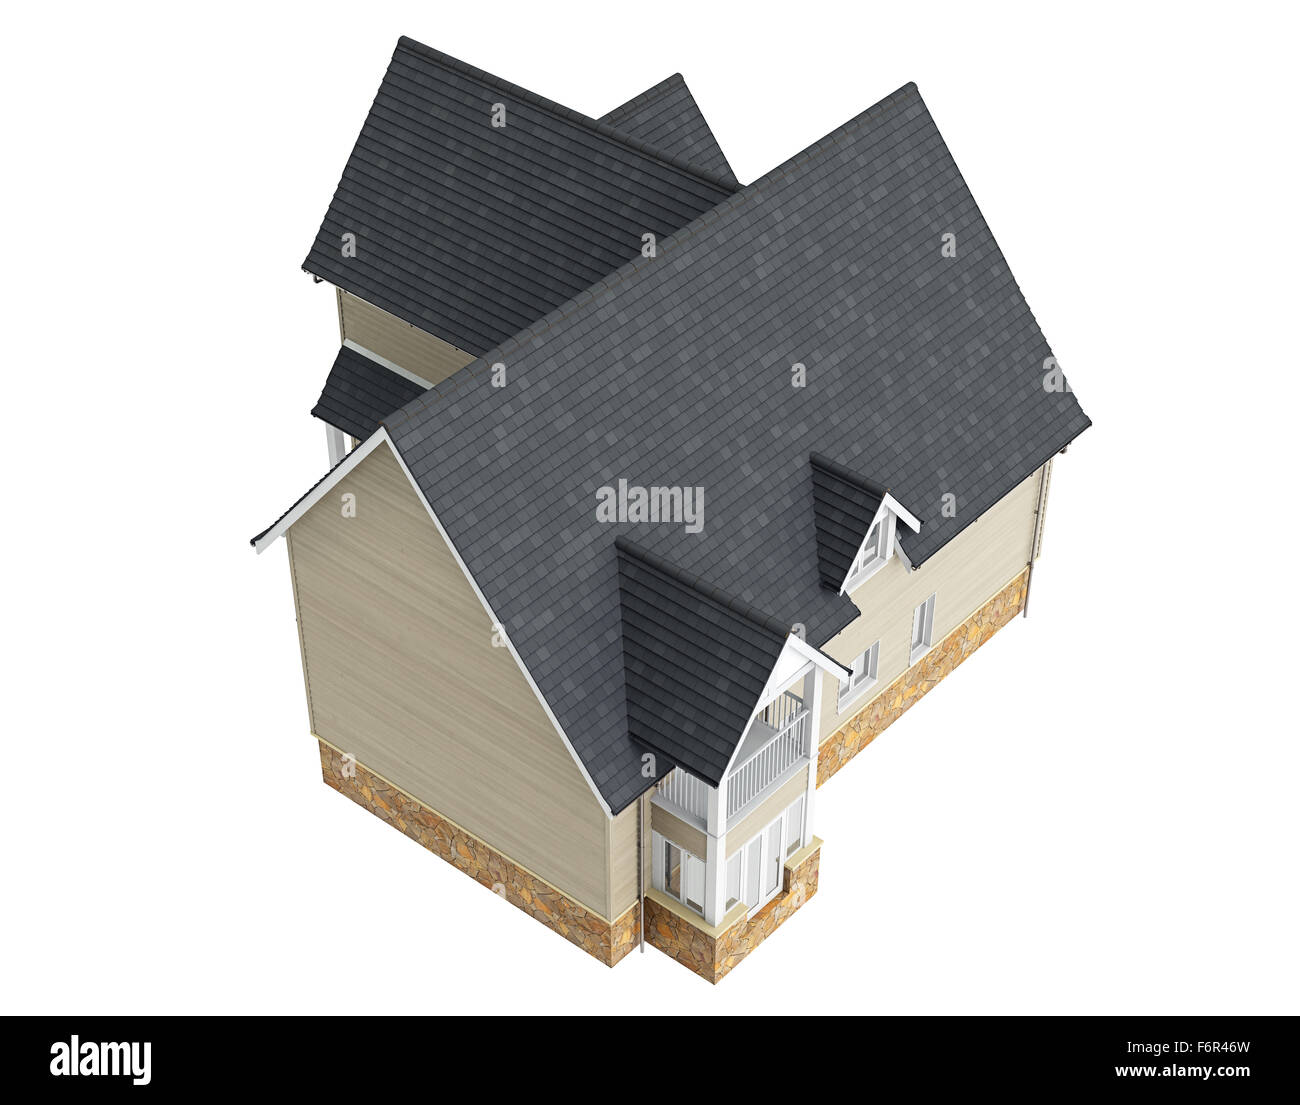 Wooden house with tile roof top view stock photo royalty for House design top view